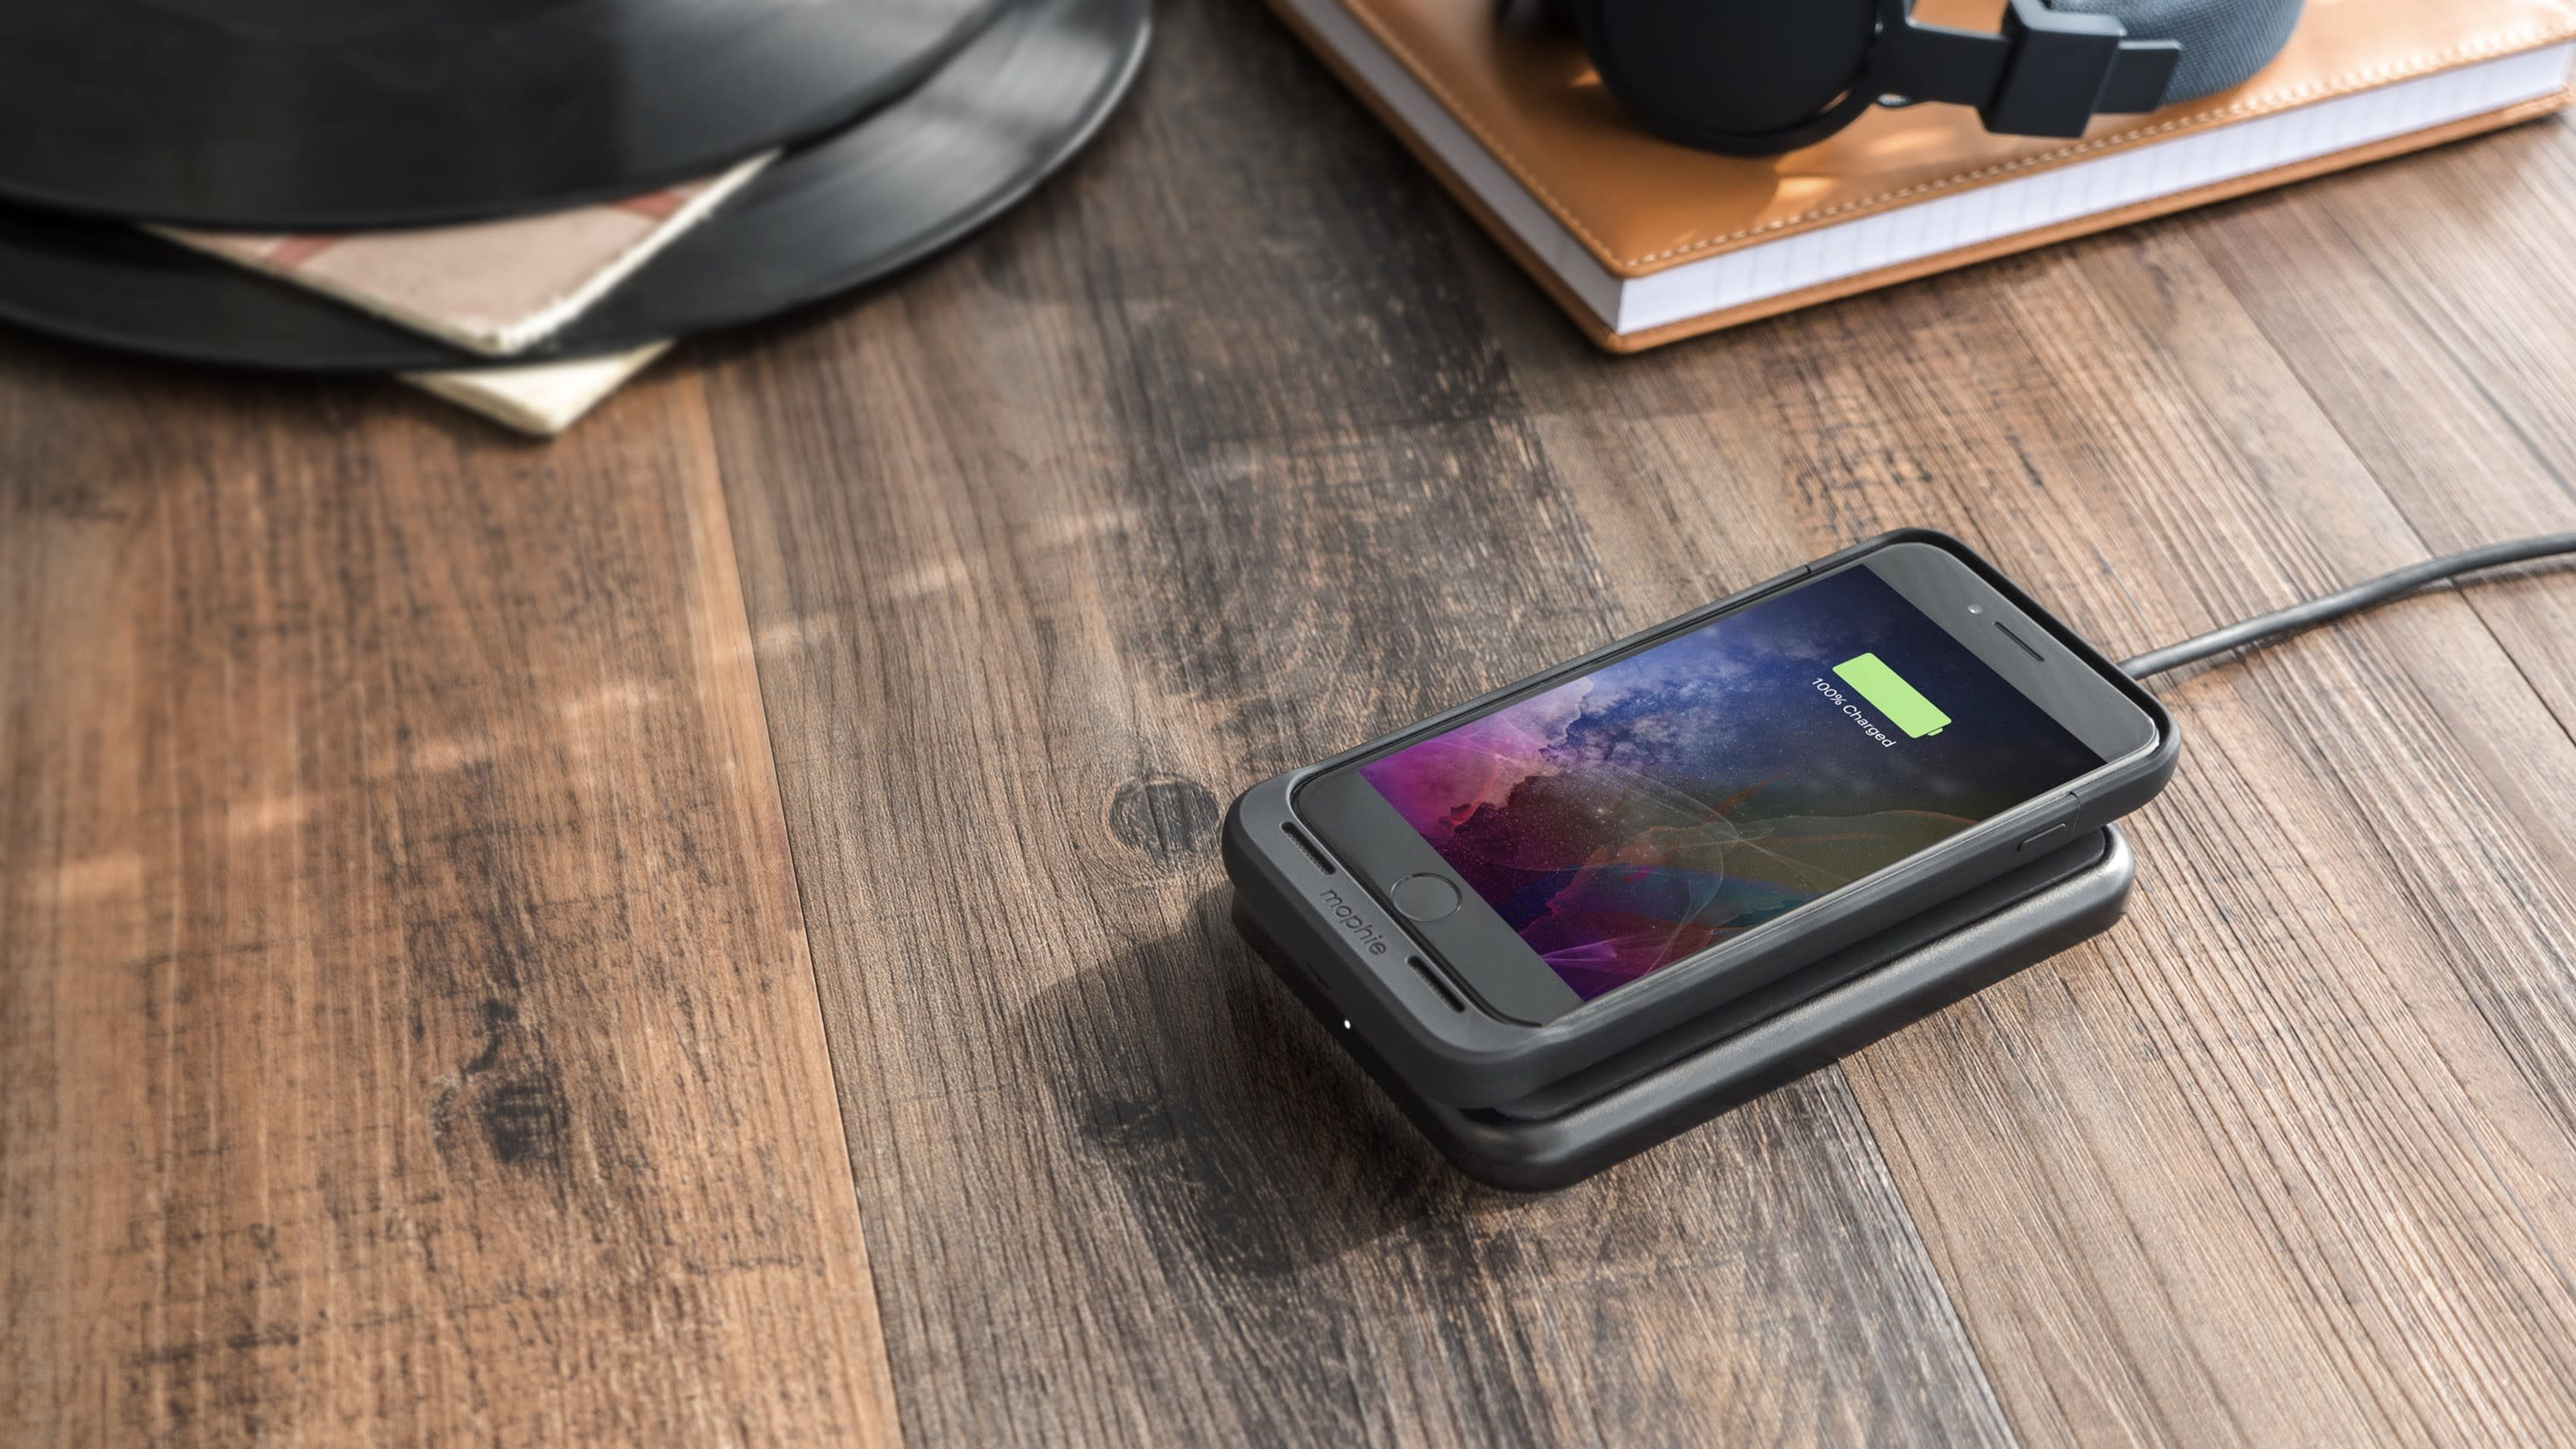 Mophie's new battery case for iPhone 7 can charge wirelessly